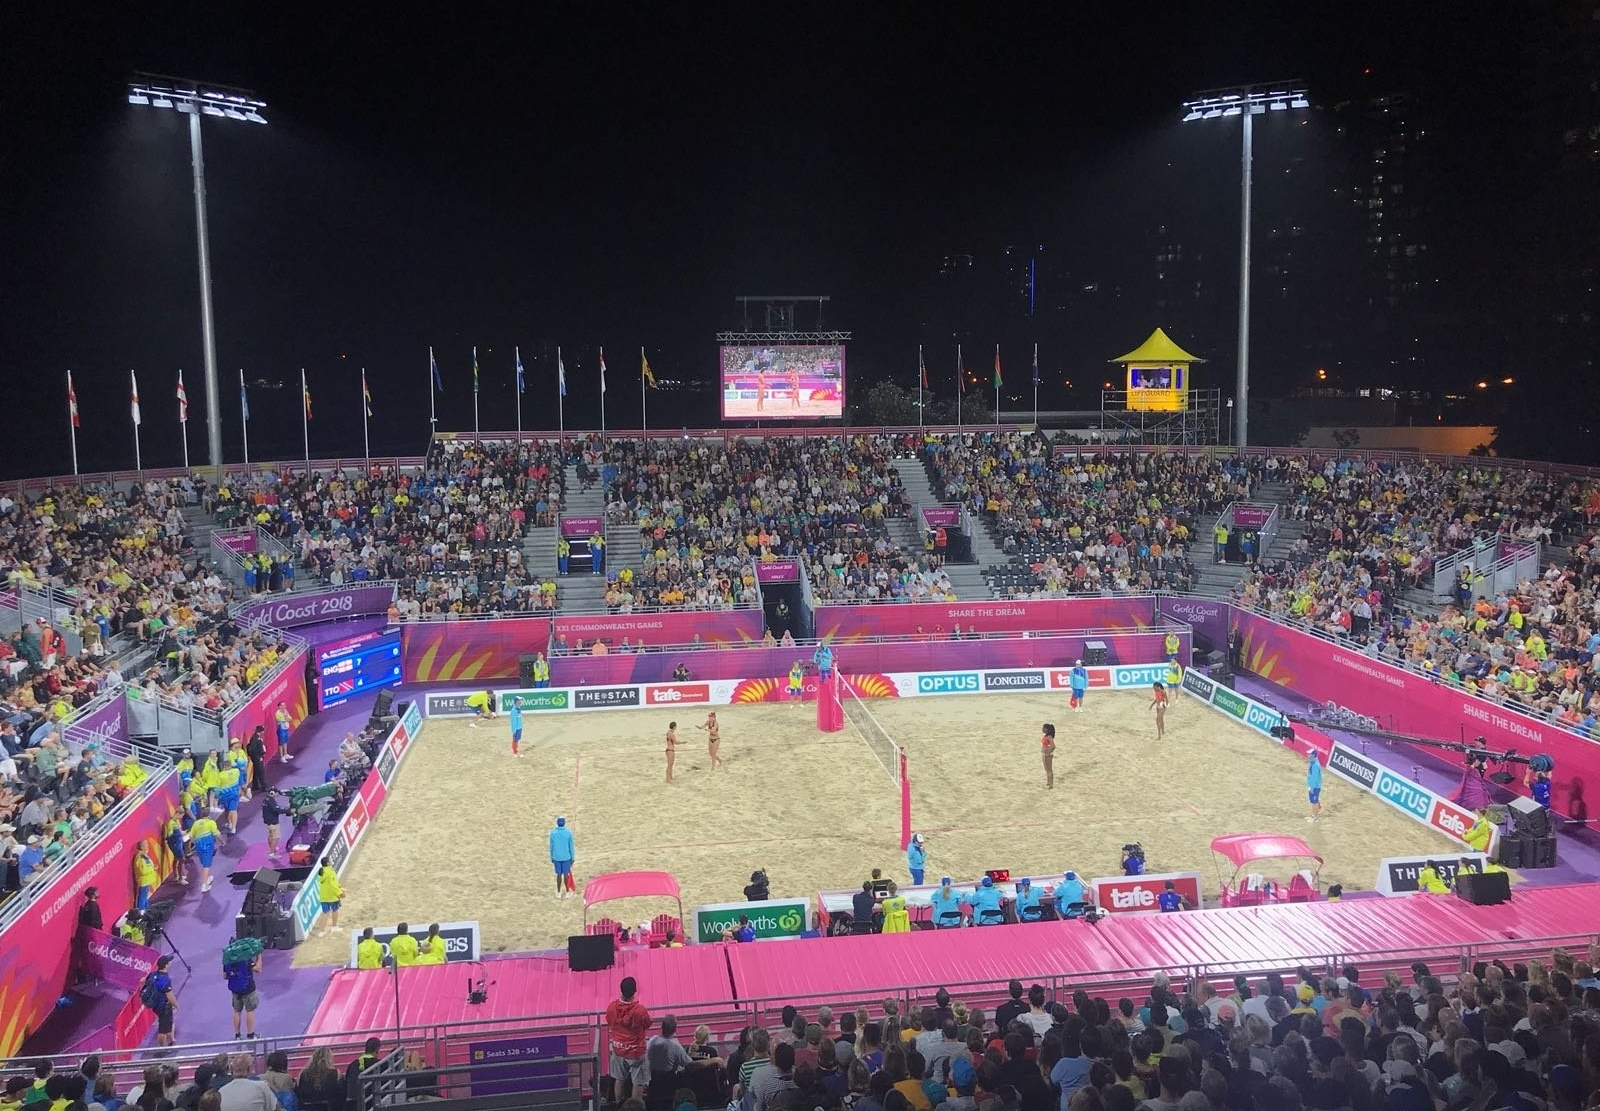 The scene is set for beach volleyball history at the Gold Coast